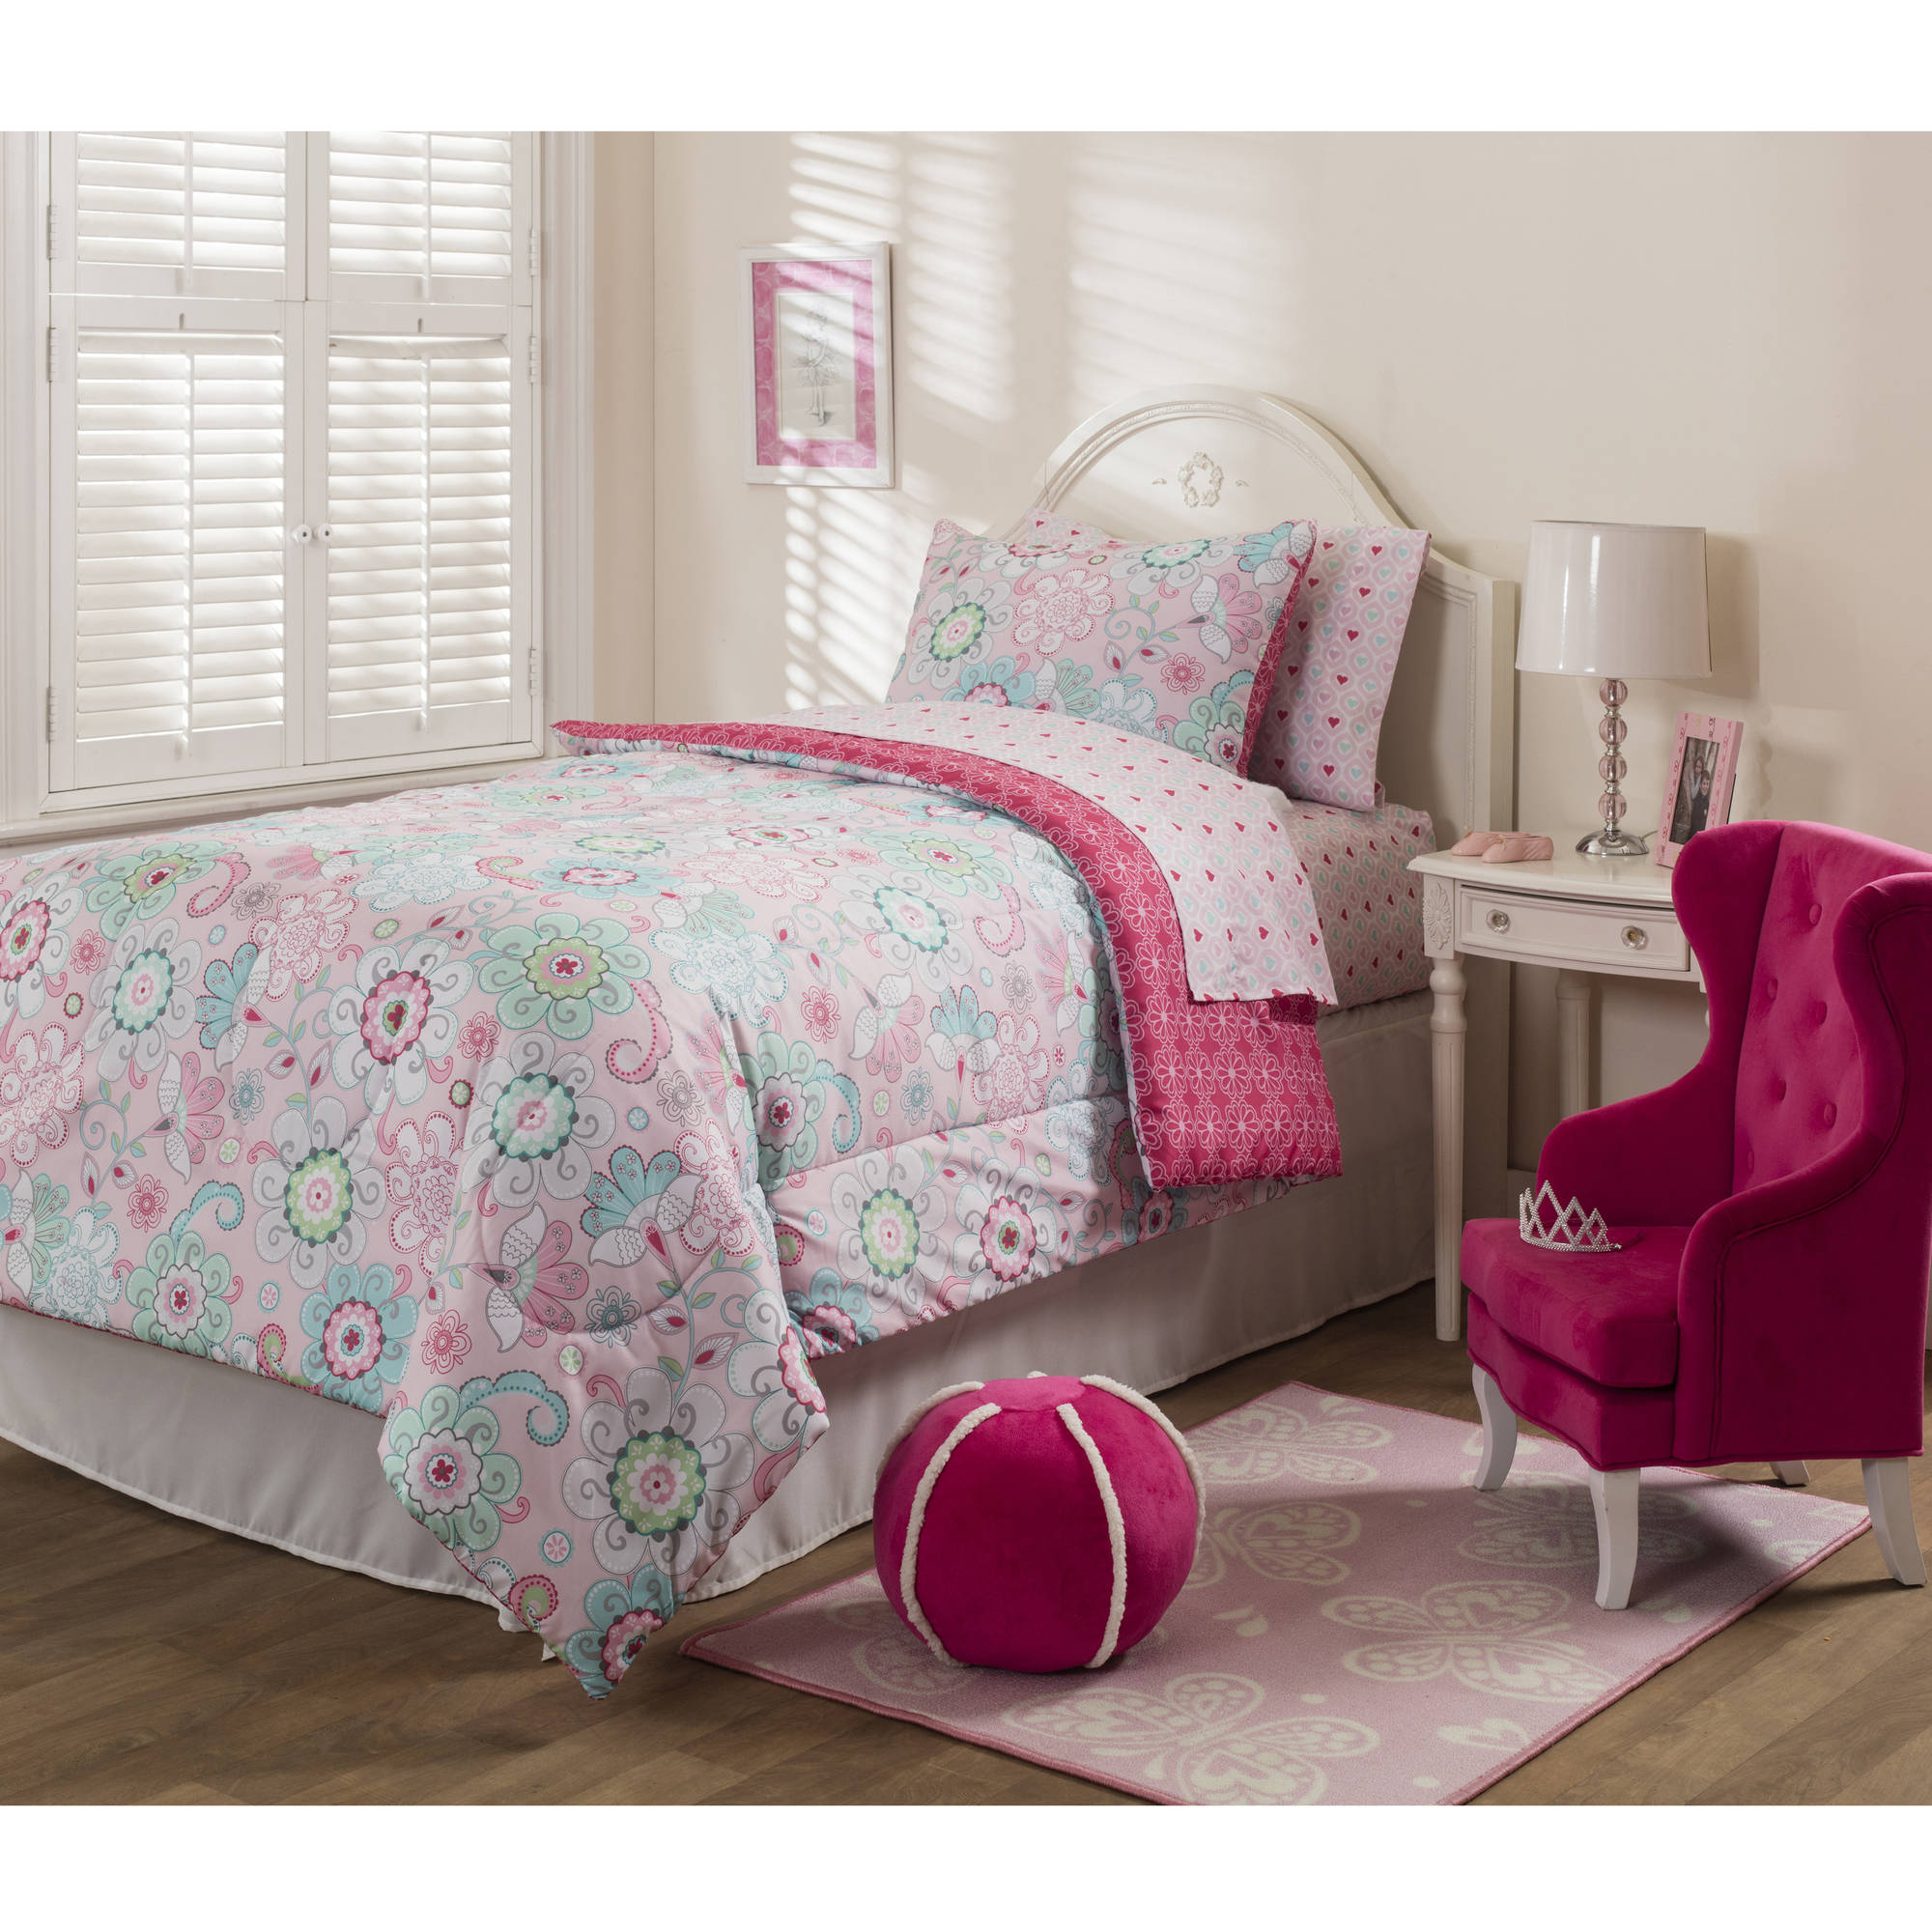 Mainstays Kids Sherbet Pink Bed in a Bag Bedding Set